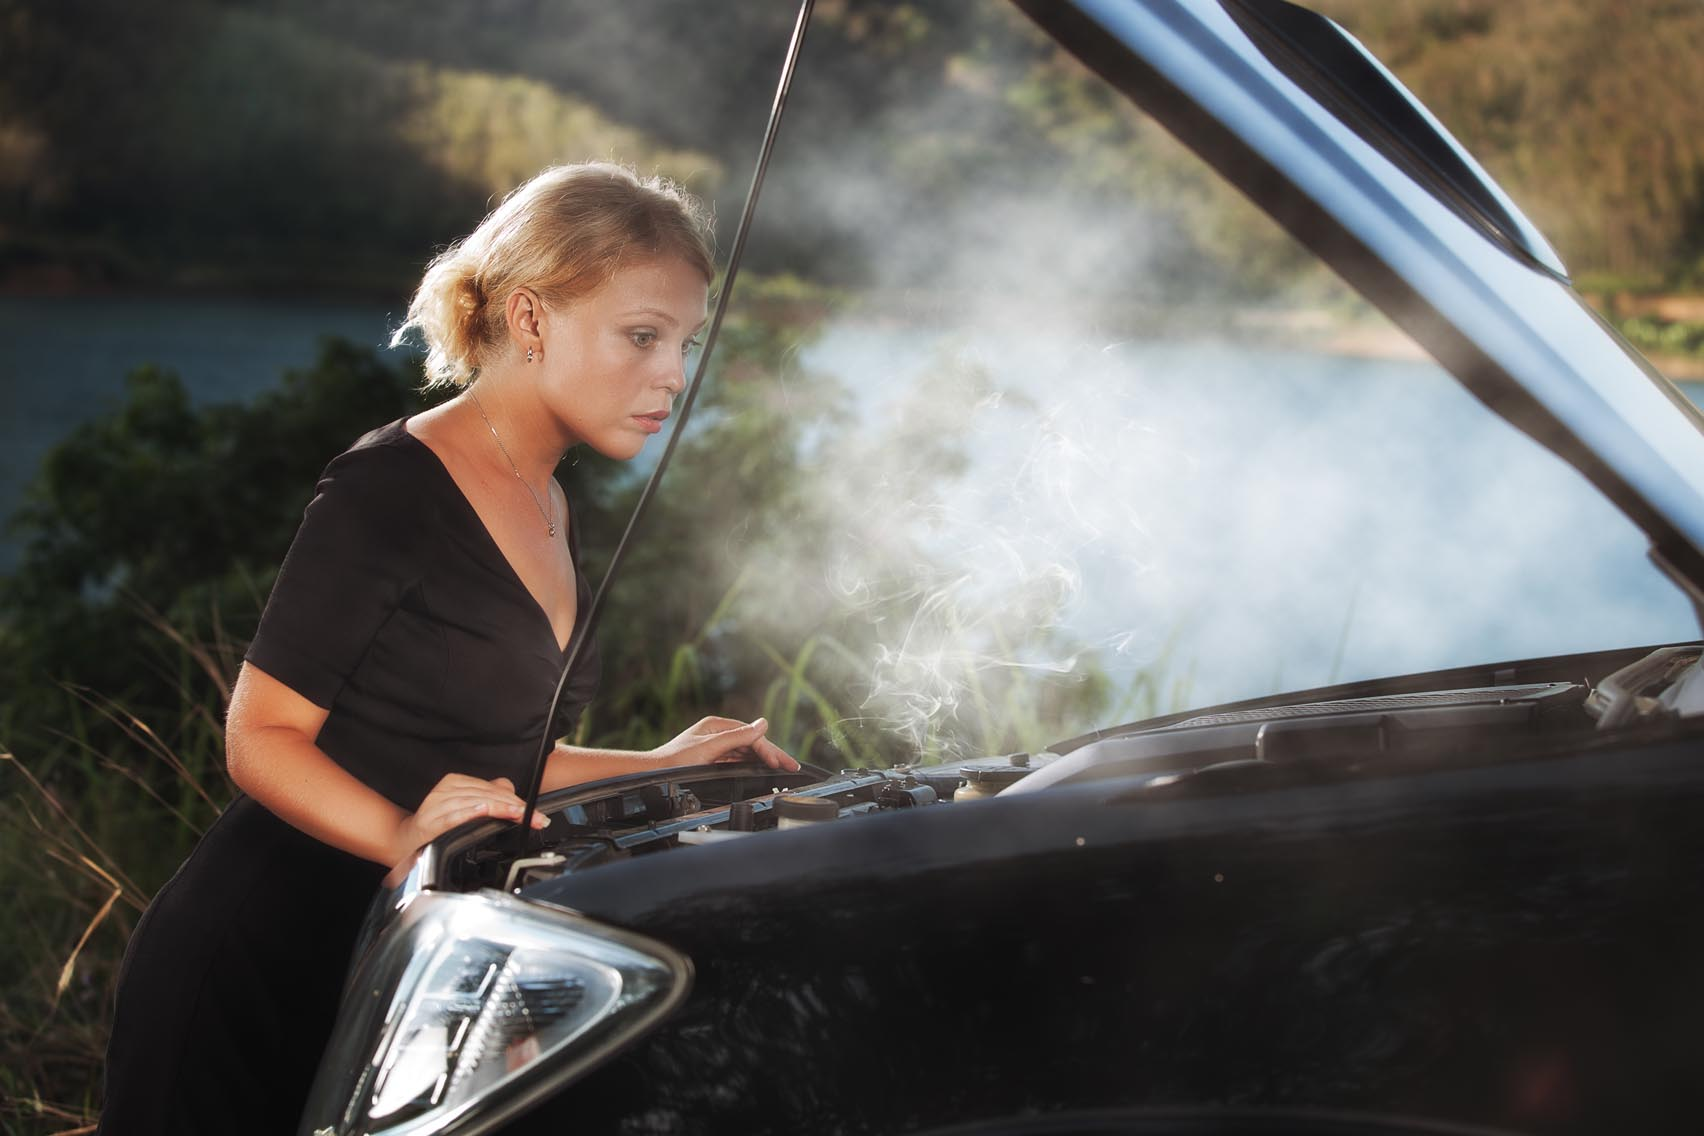 What should I do if my car starts to overheat?